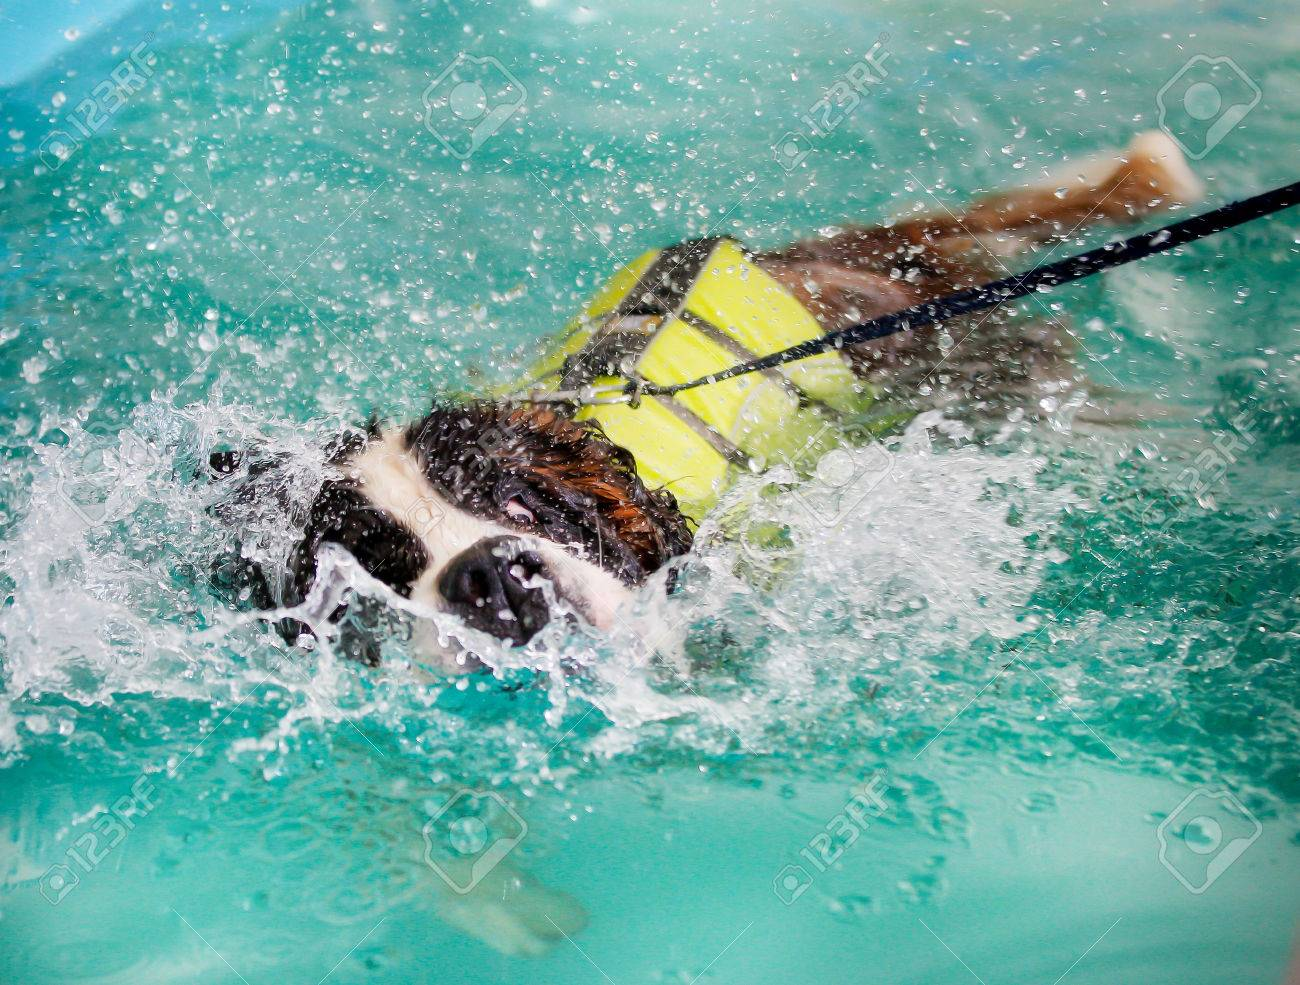 Huge St Bernard dog taking a swim in indoor swimming pool for..